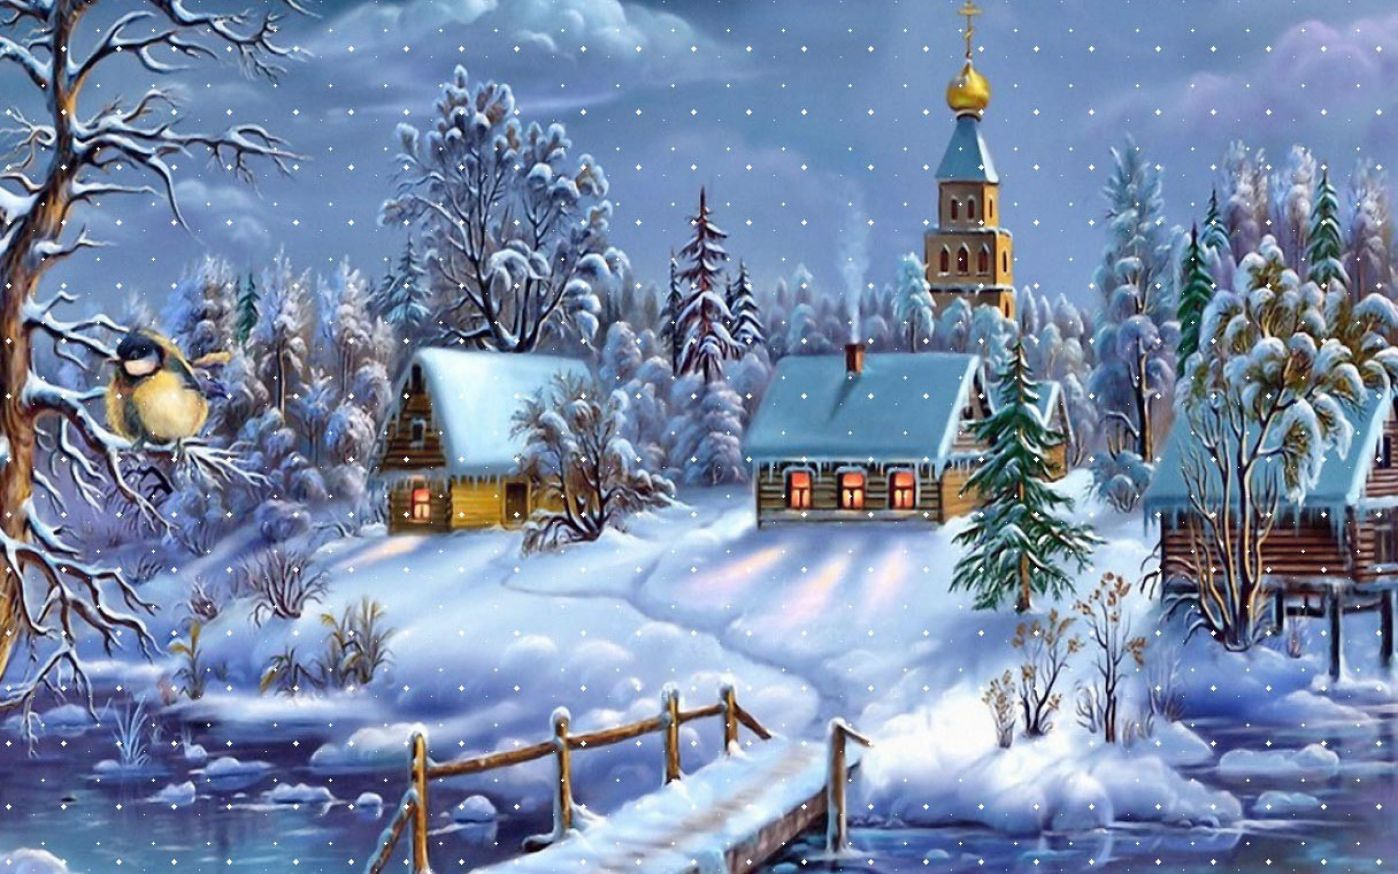 Free animated christmas wallpaper backgrounds - Free animated wallpaper s8 ...